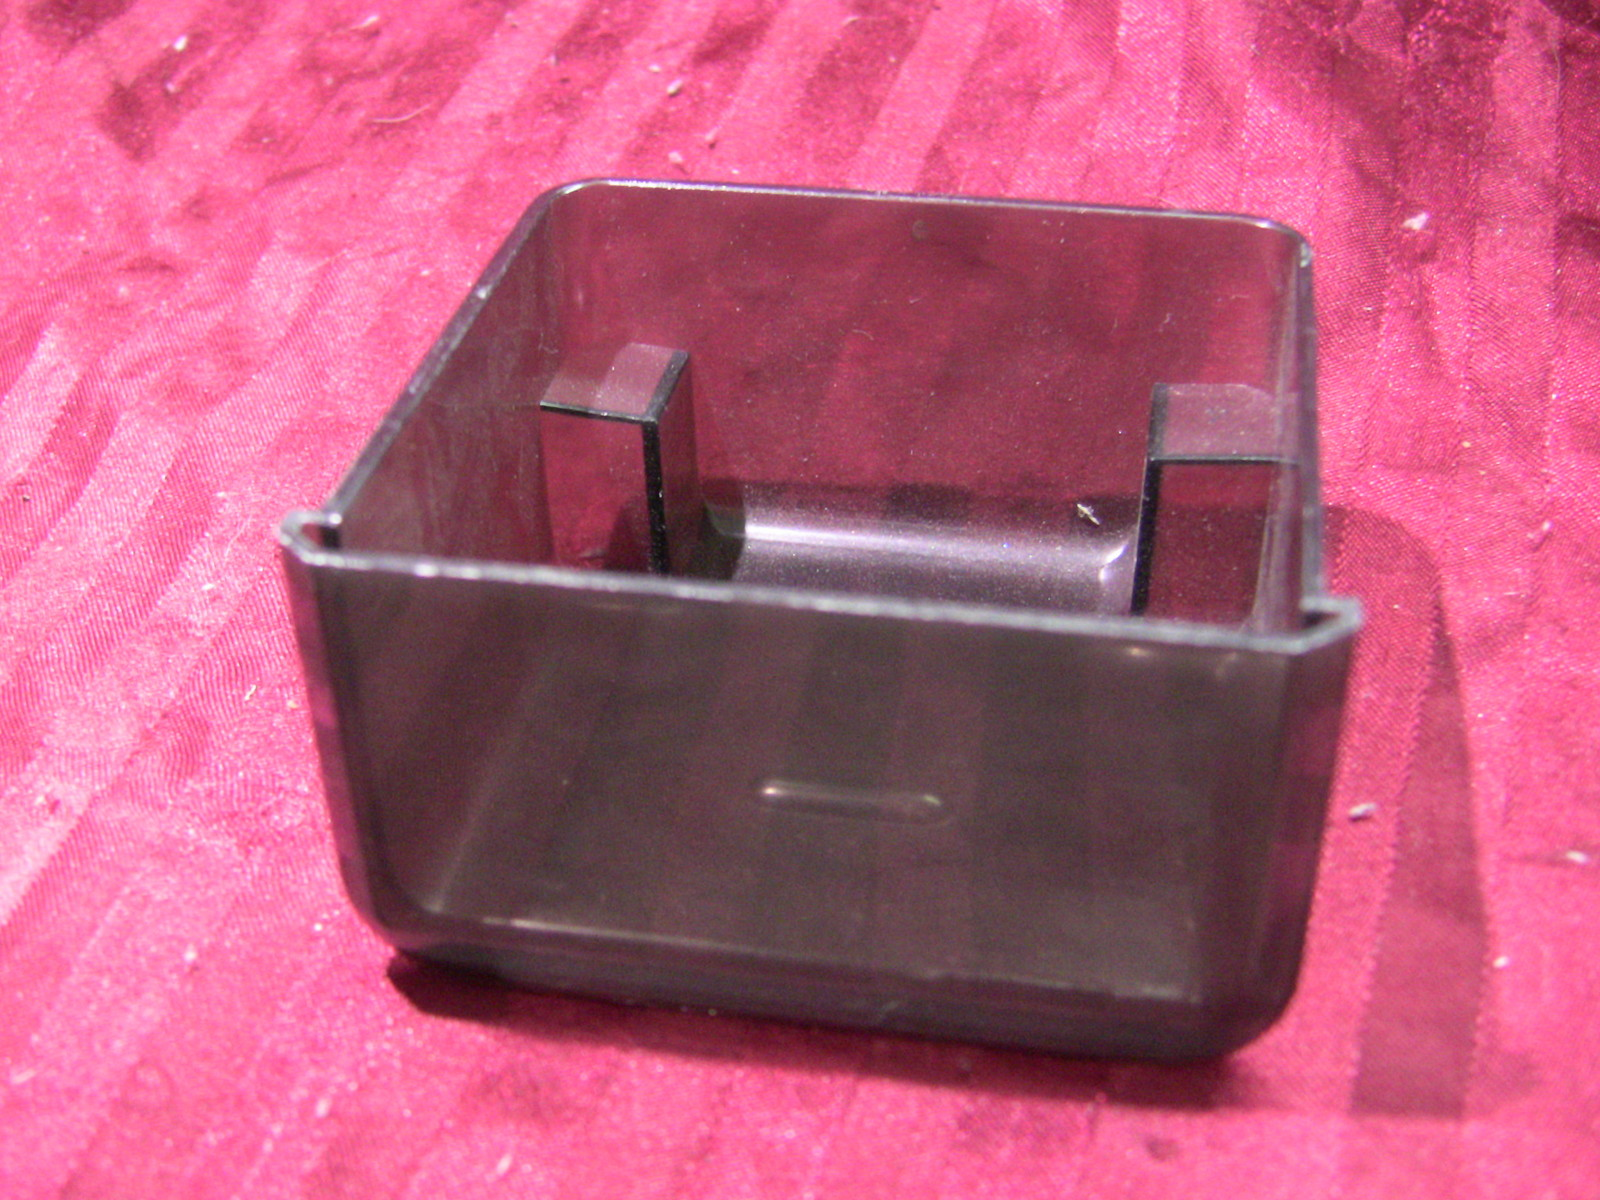 Replacement Shavings Tray Catcher For Model 18 Boston Pencil Sharpener 8 99